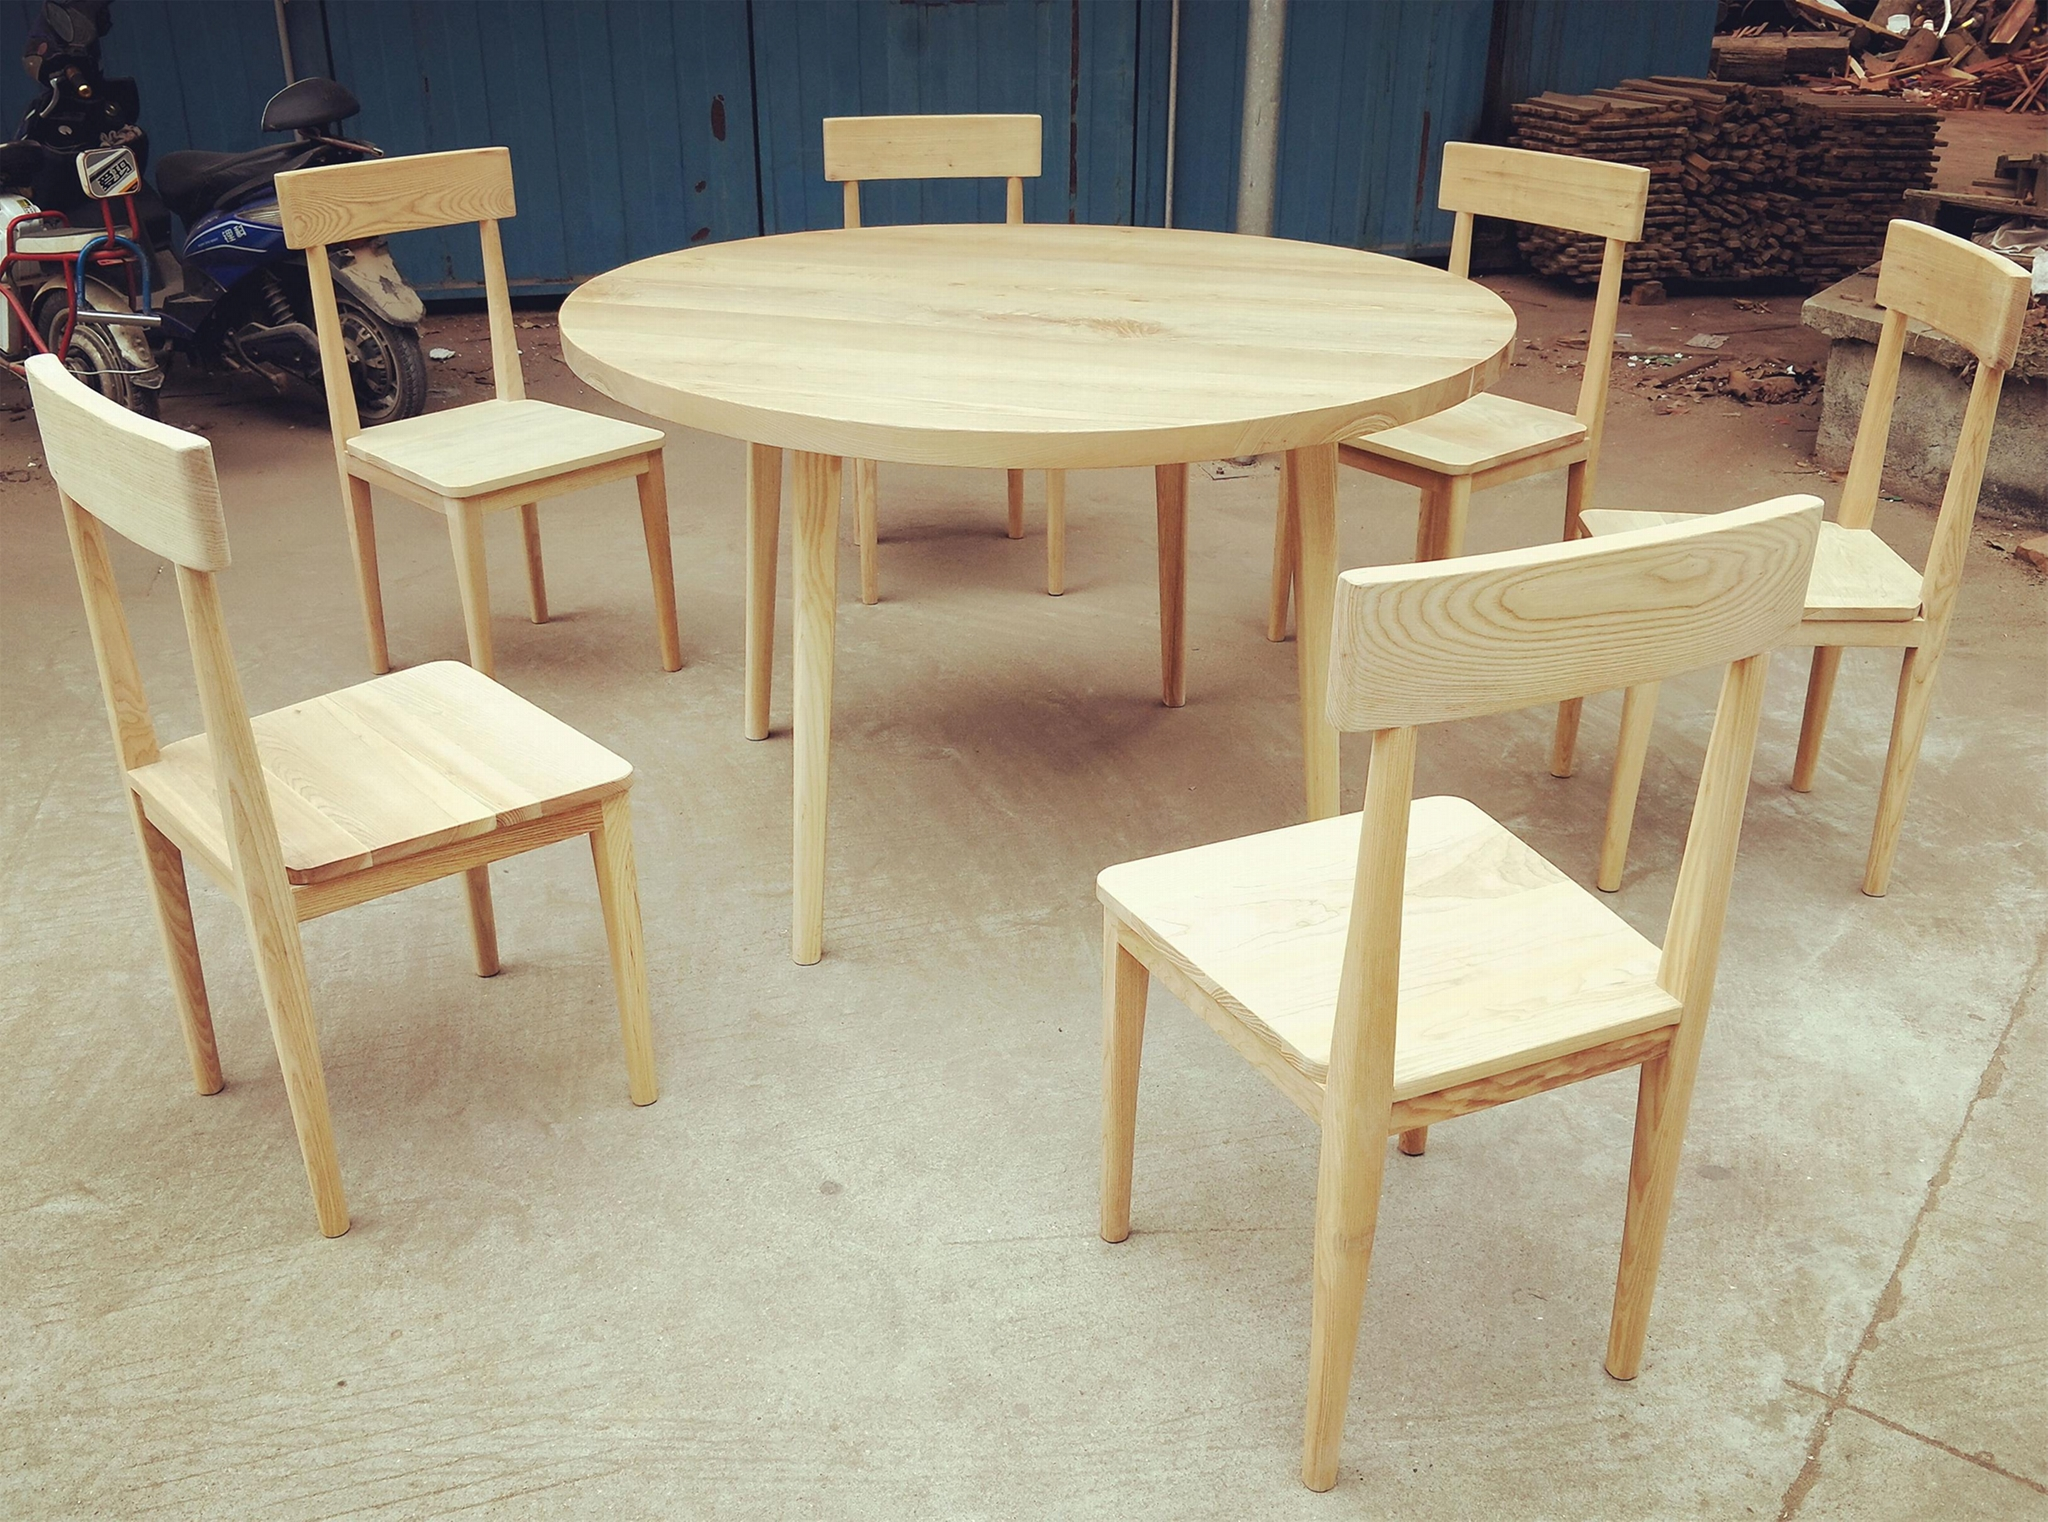 ash wood table with 6 chairs 1